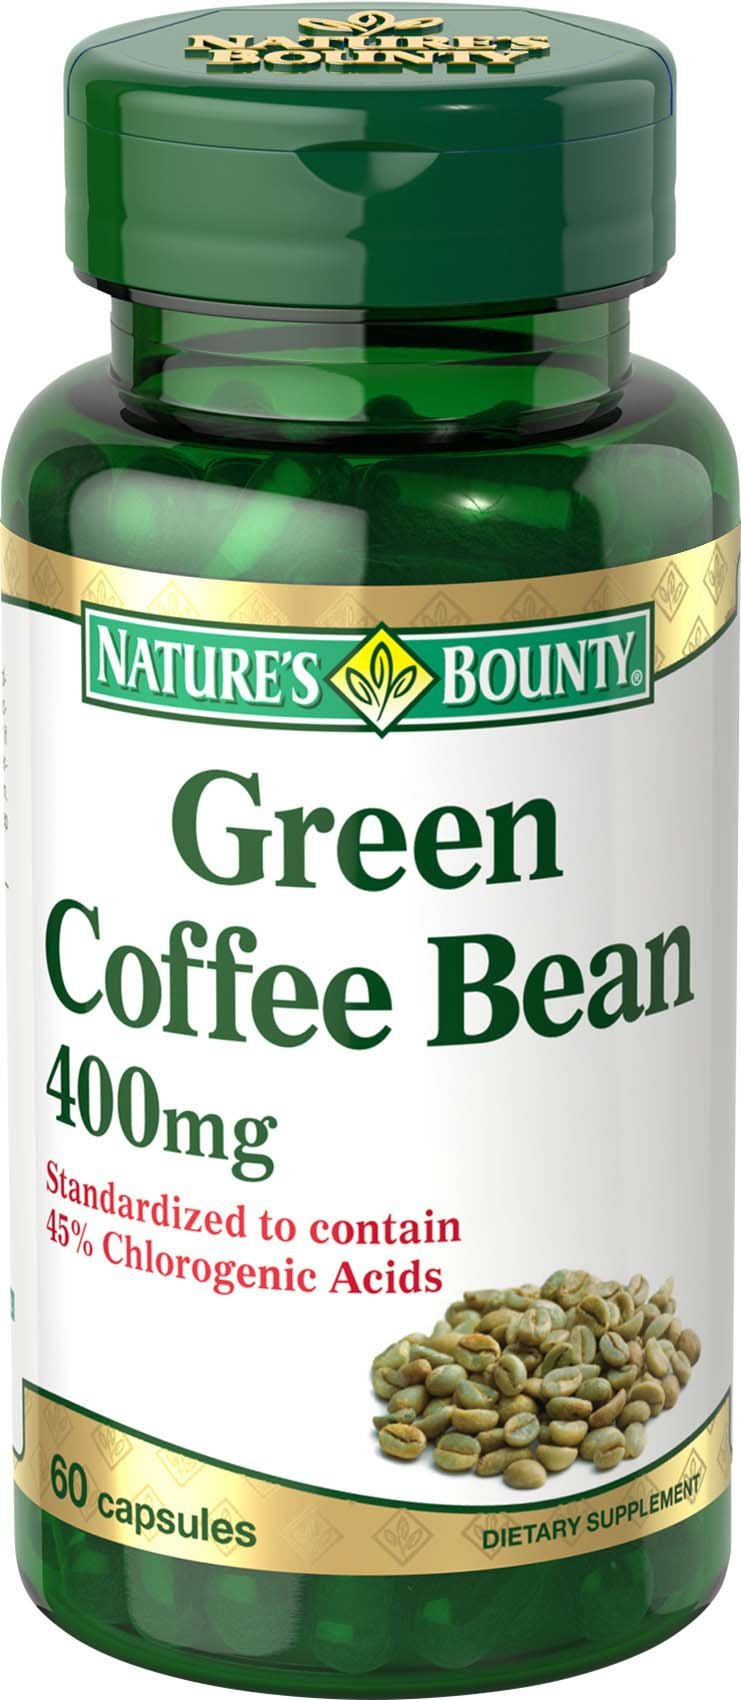 Nature's Bounty Green Coffee Bean 400 mg, 60 Capsules